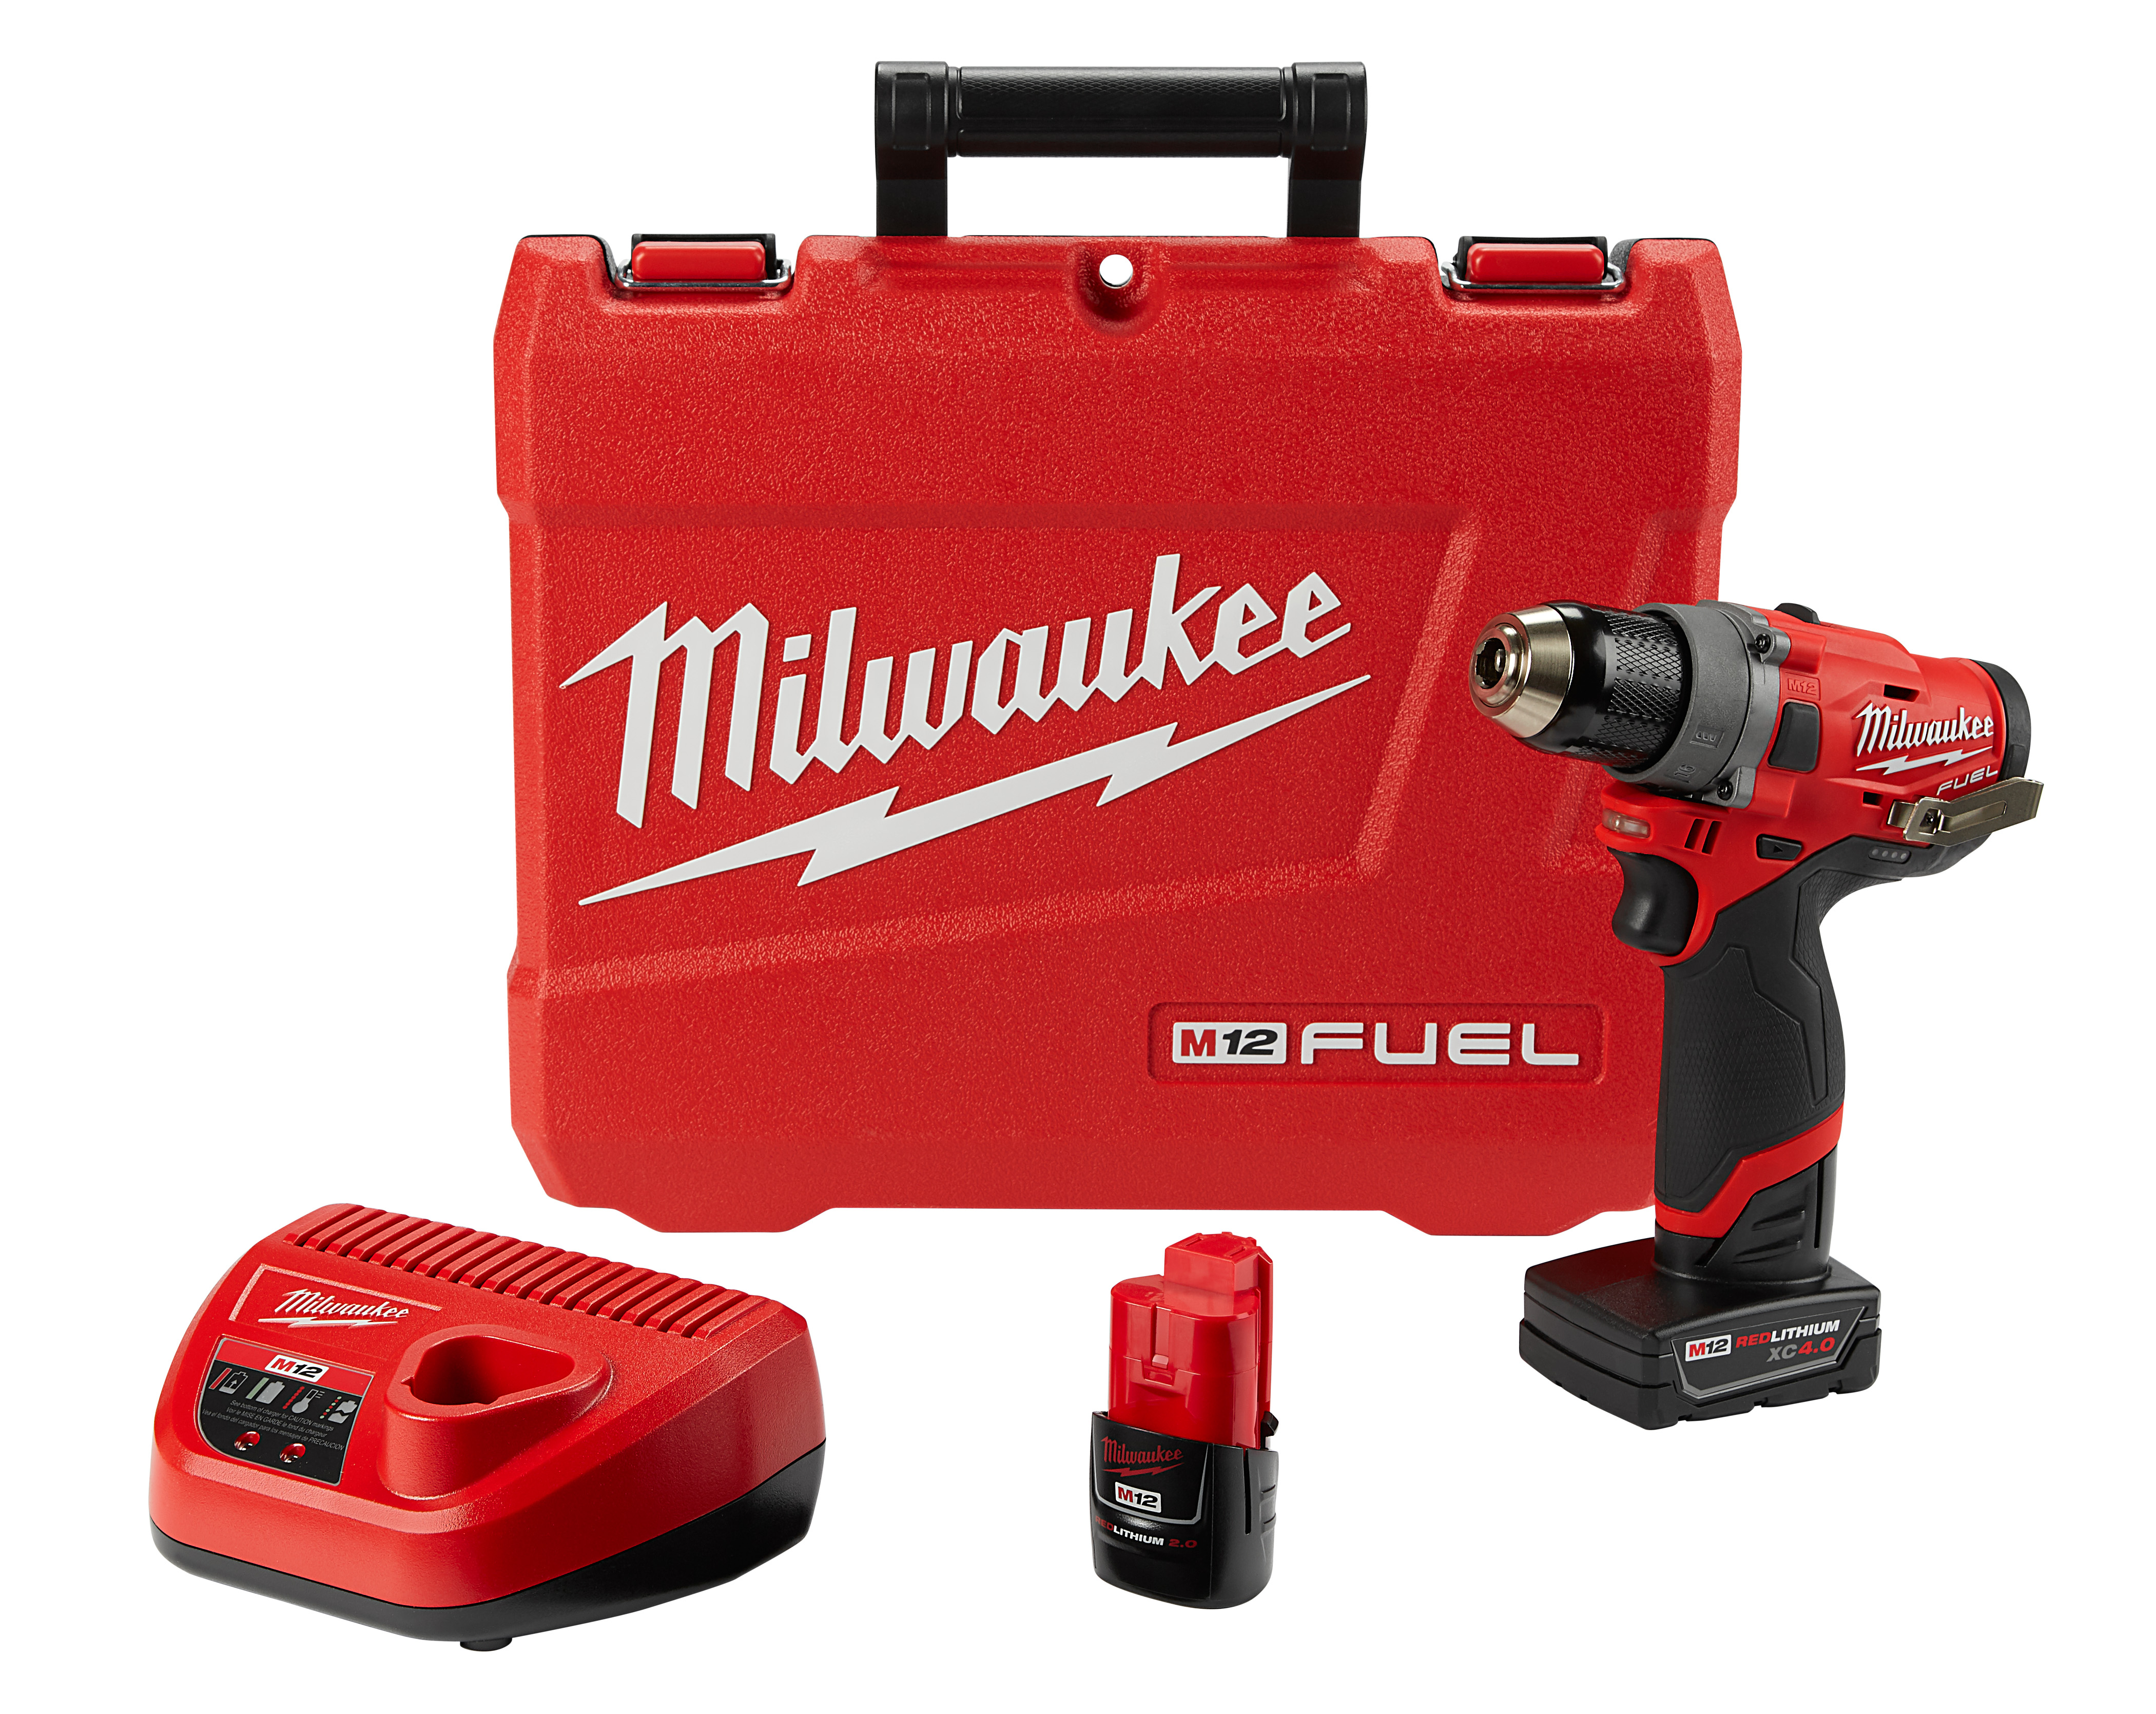 Milwaukee® M12™ FUEL™ 2503-22 Cordless Drill Driver Kit, 1/2 in Chuck, 12 VAC, 1700 rpm No-Load, 6.6 in OAL, Lithium-Ion Battery